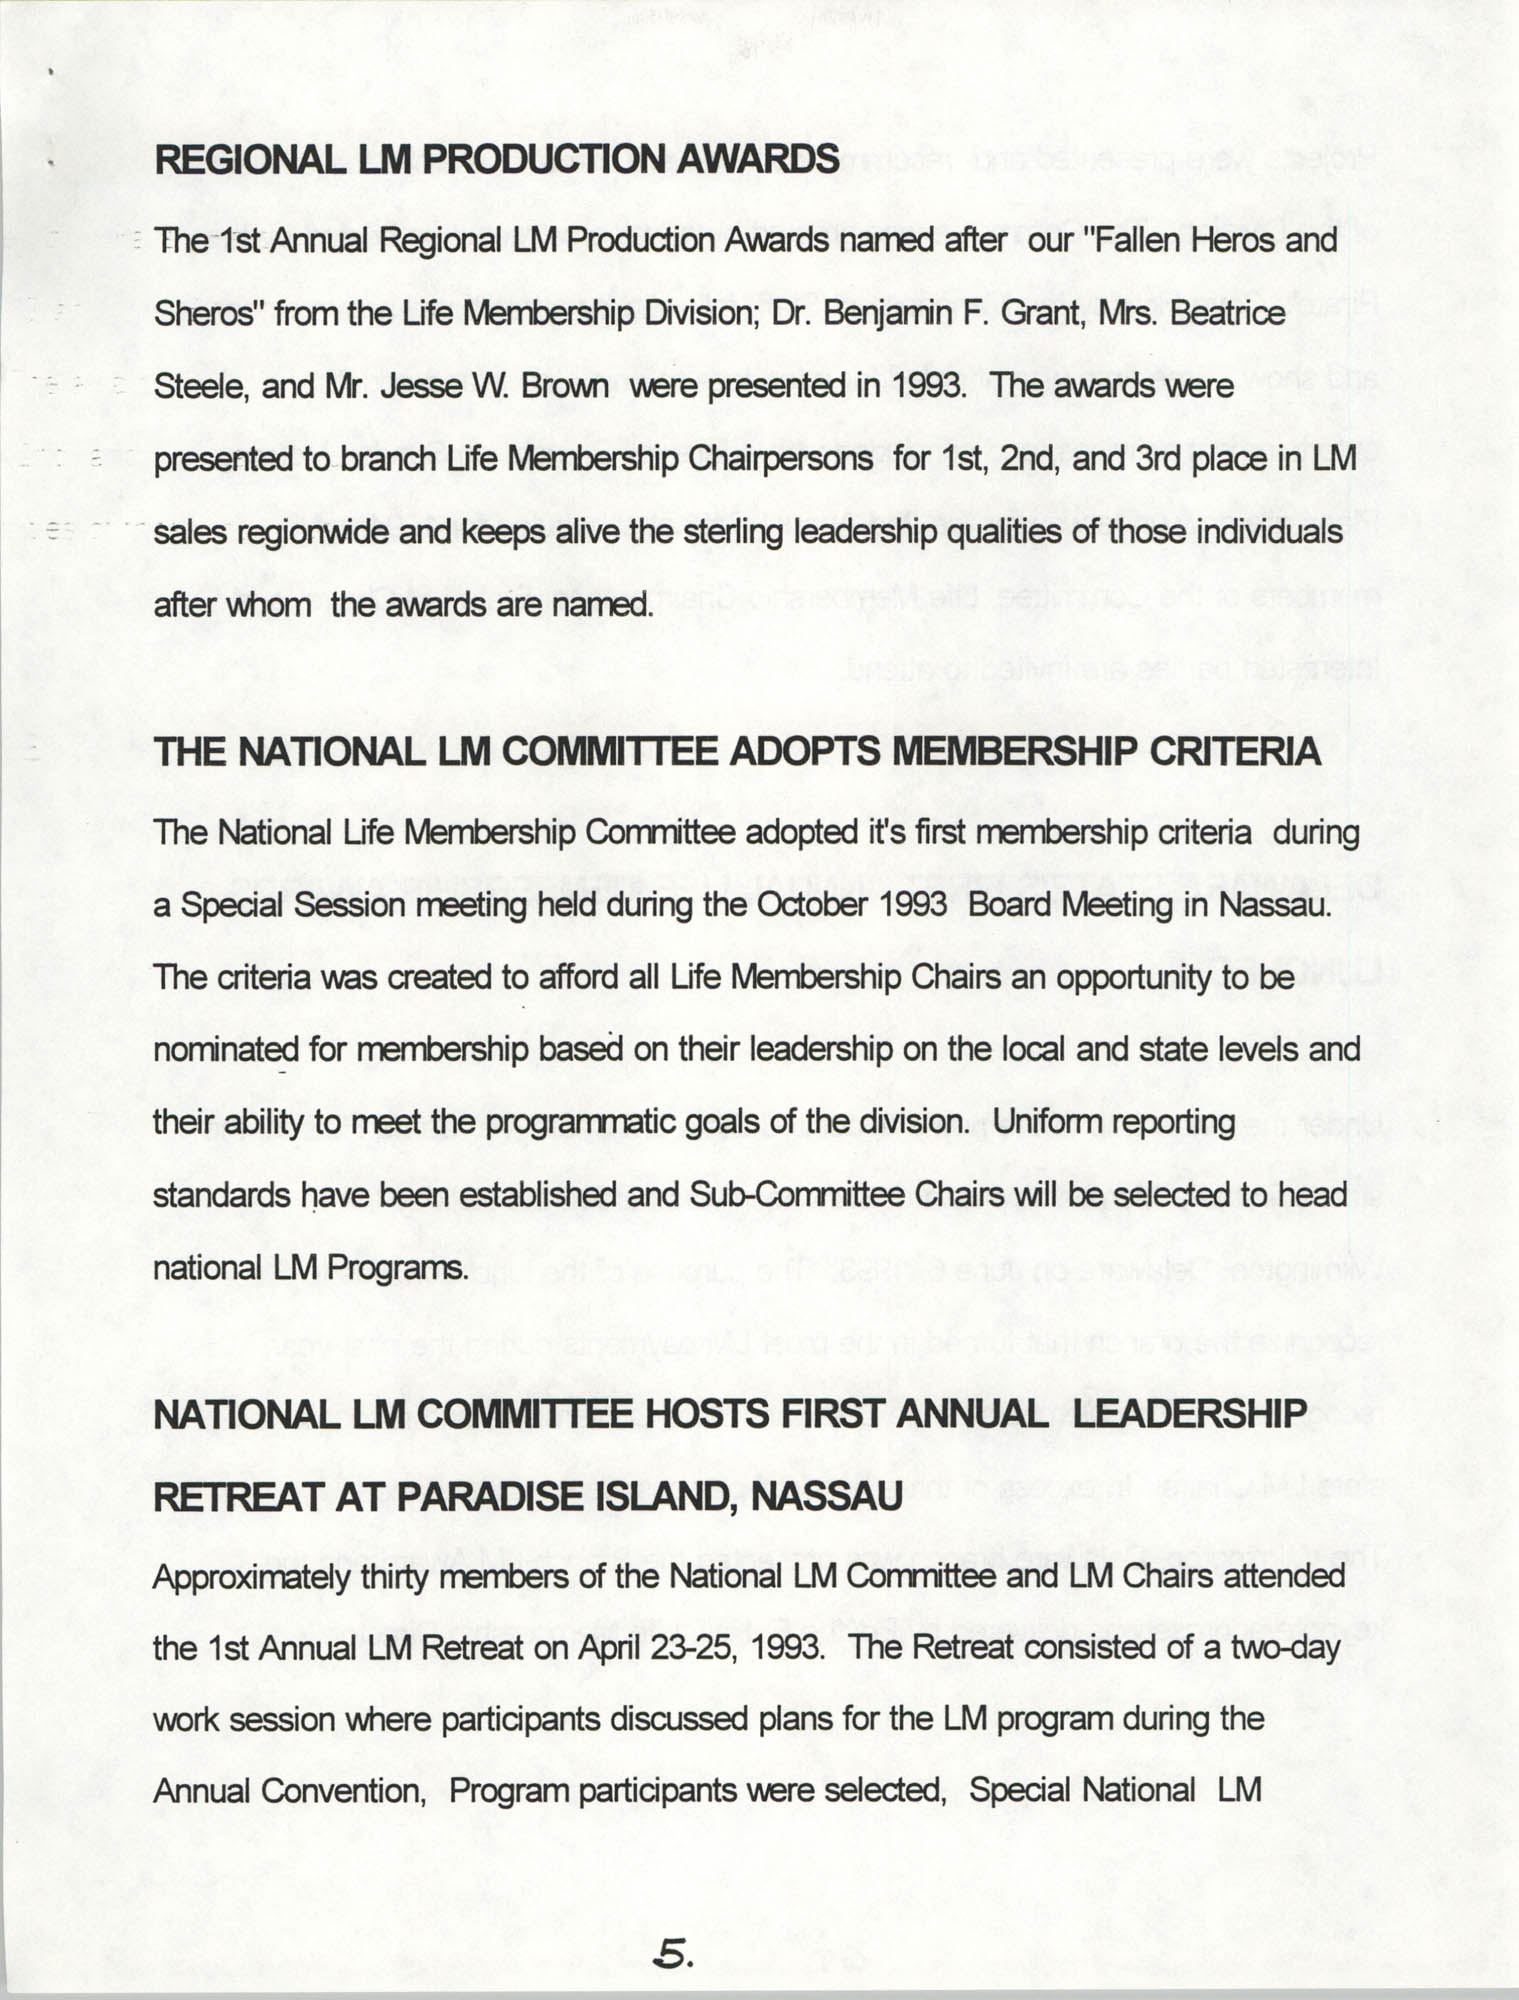 Life Membership Division, 1993 Annual Report, Page 5